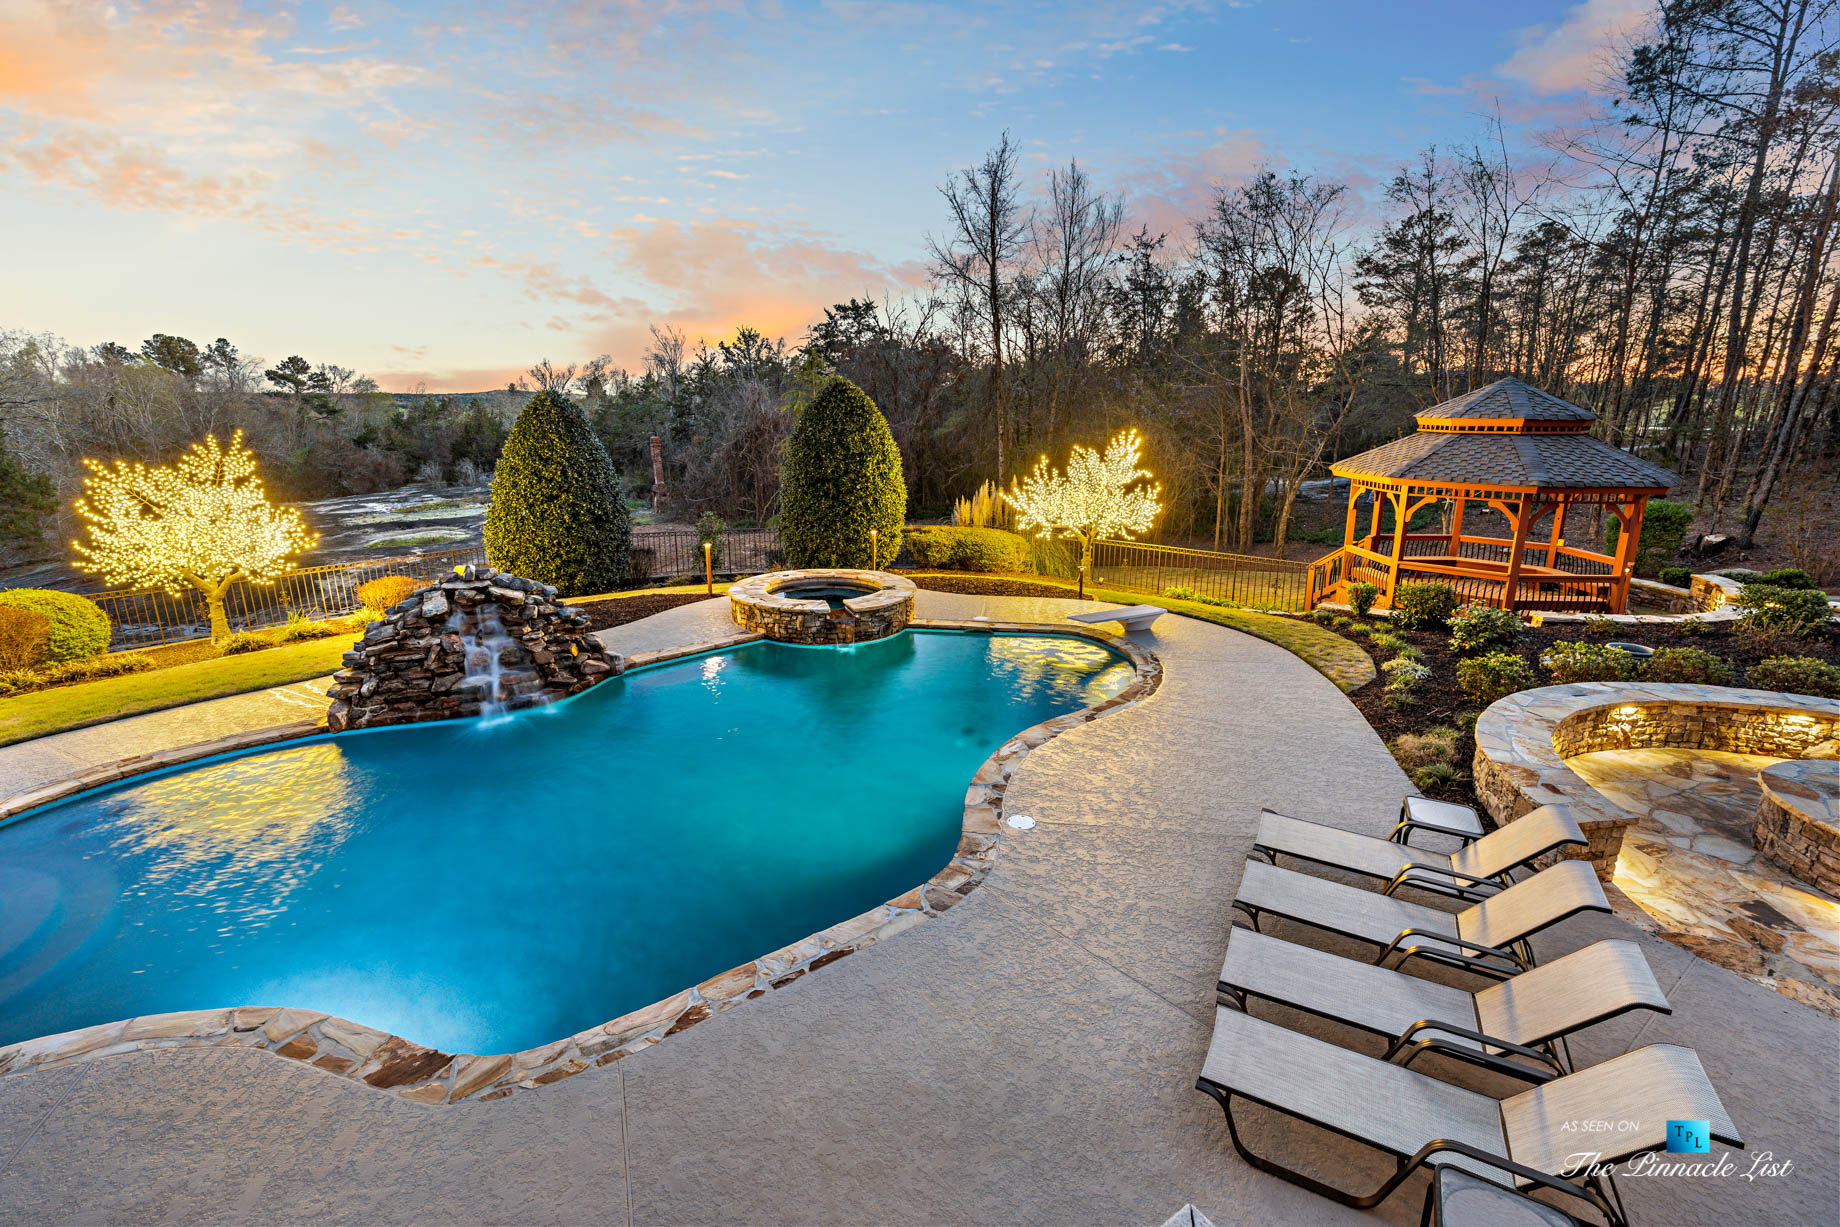 2219 Costley Mill Rd NE, Conyers, GA, USA – Backyard Pool and Hot Tub – Luxury Real Estate – Equestrian Country Home